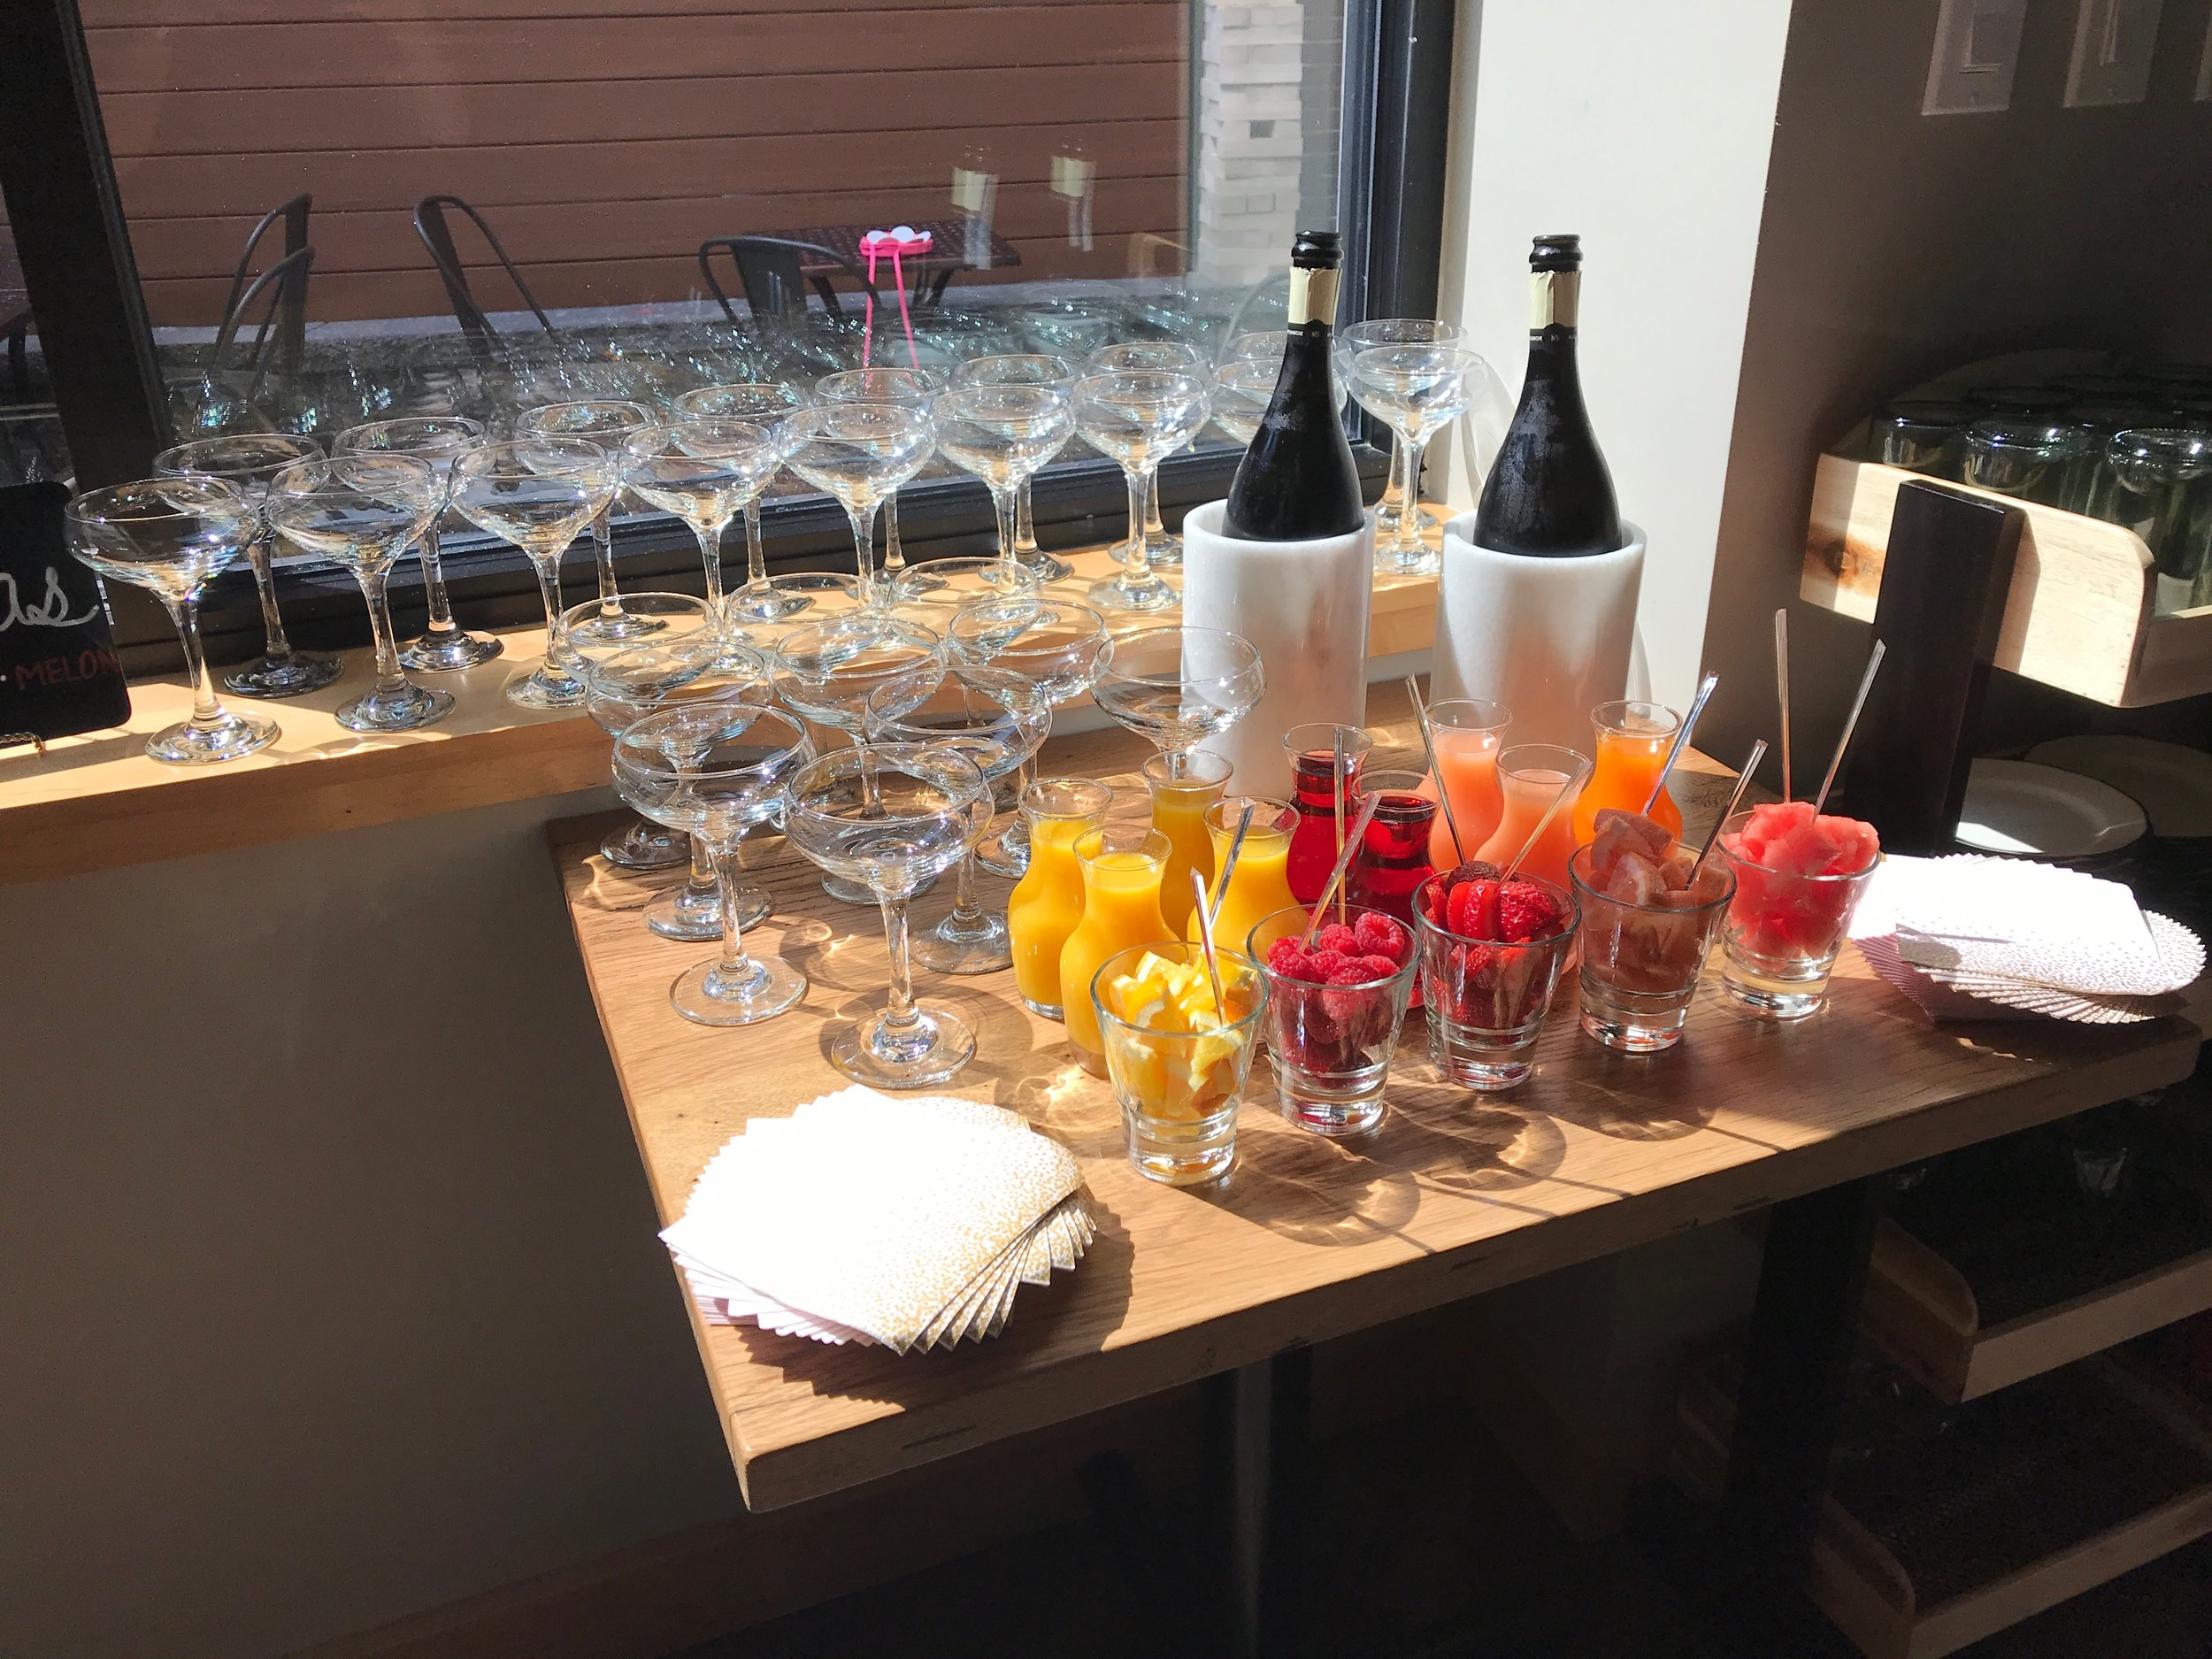 The Stones Bubbly Buffet - Our self-serve mimosa bar is a wonderful addition to any event!